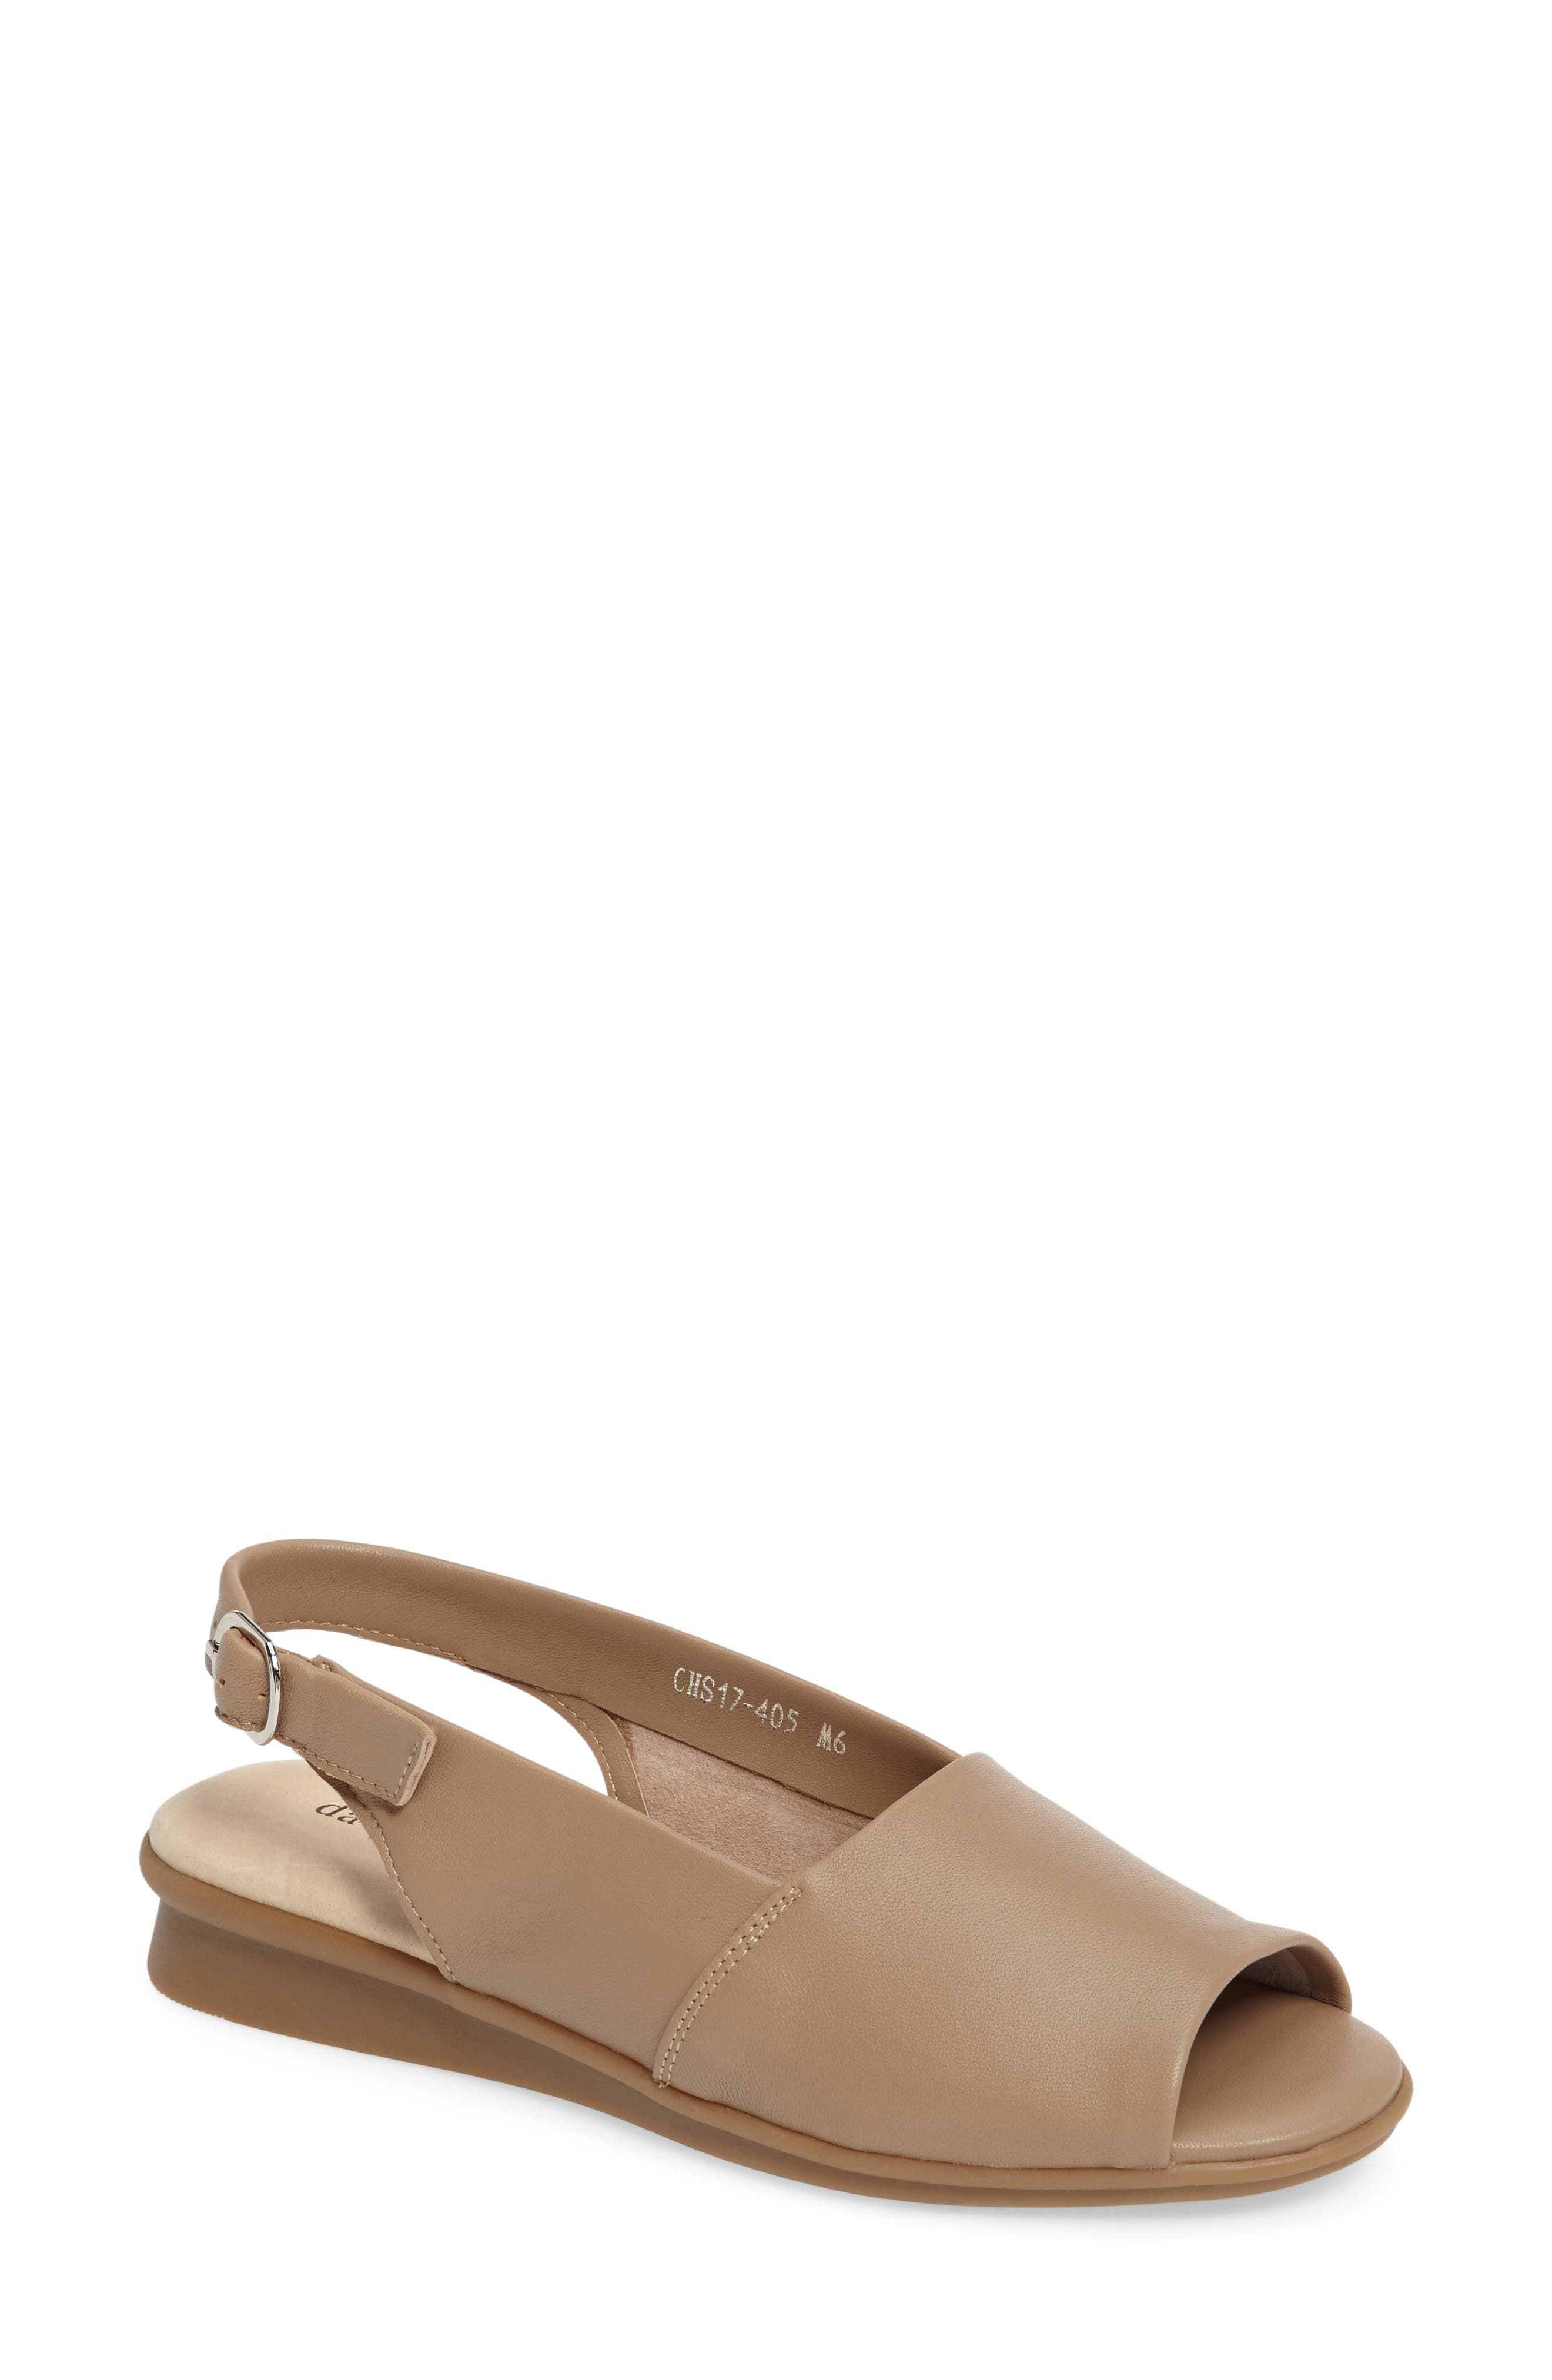 Norma Slingback Sandal,                         Main,                         color, Camel Leather